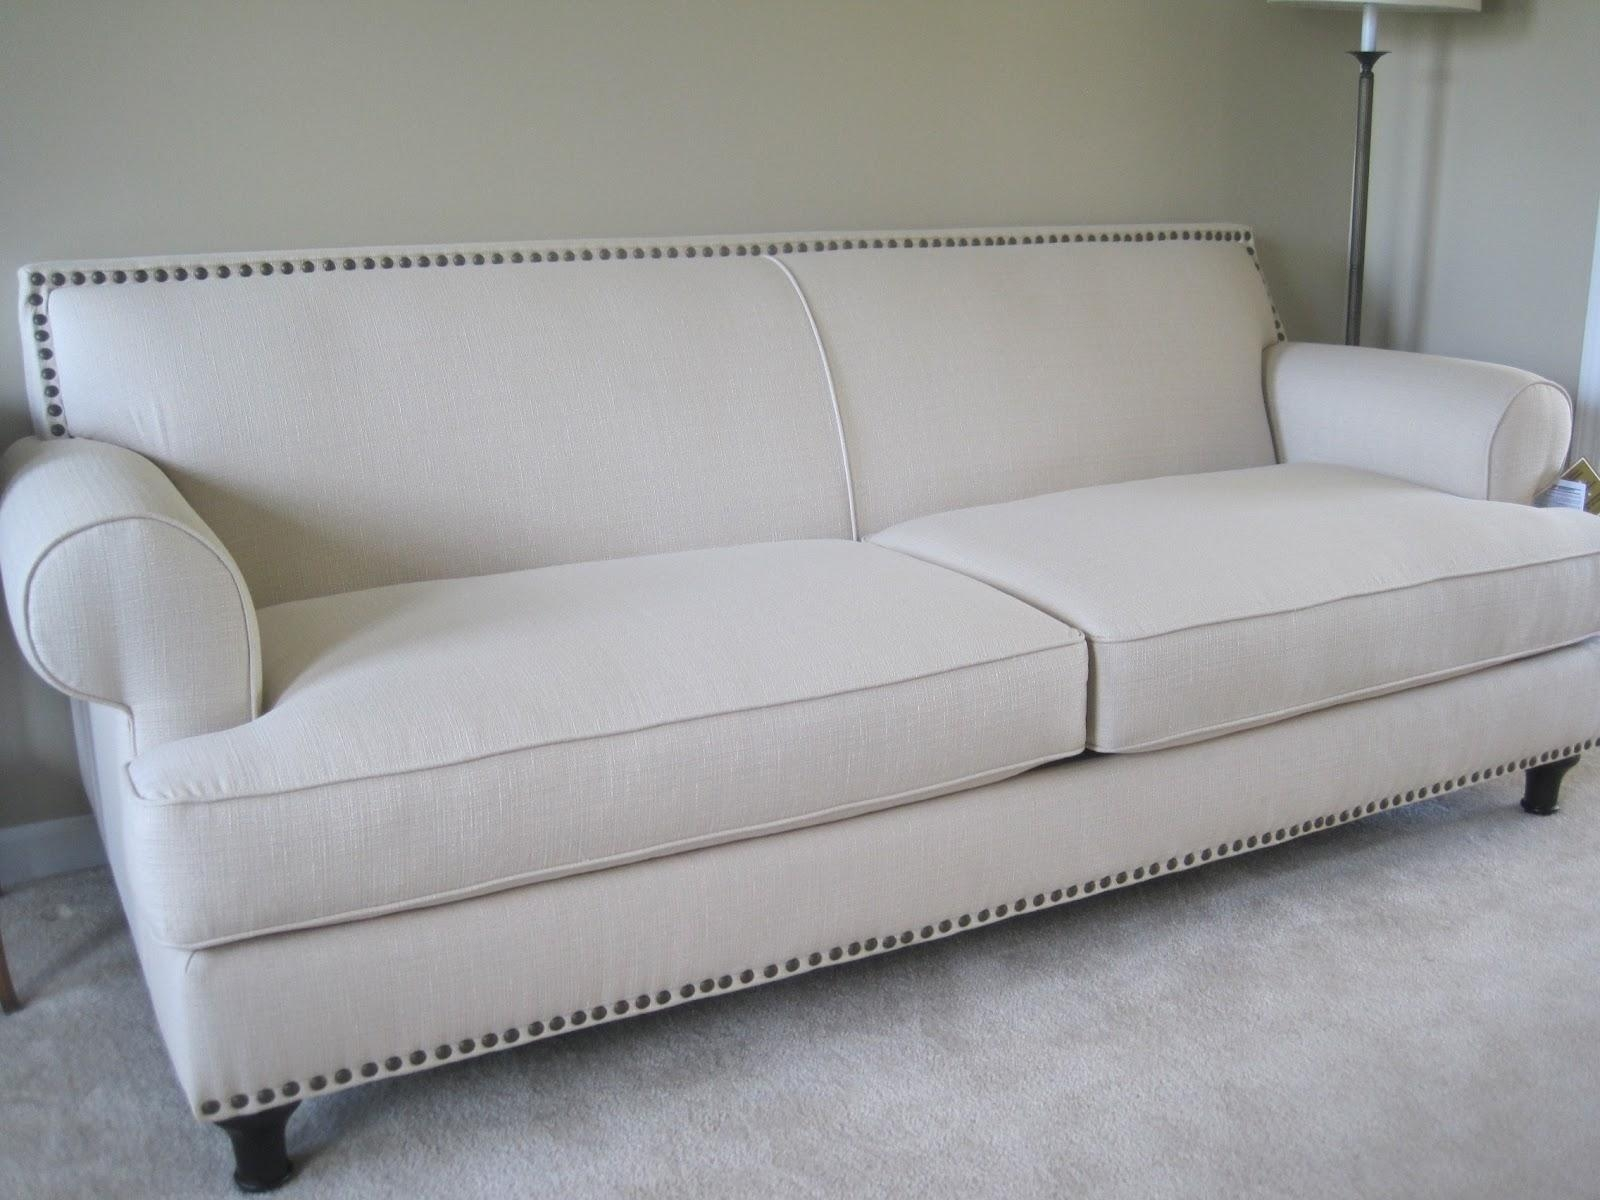 Designed To Dwell So Fa Ortunate Throughout Pier One Carmen Sofas Image 9